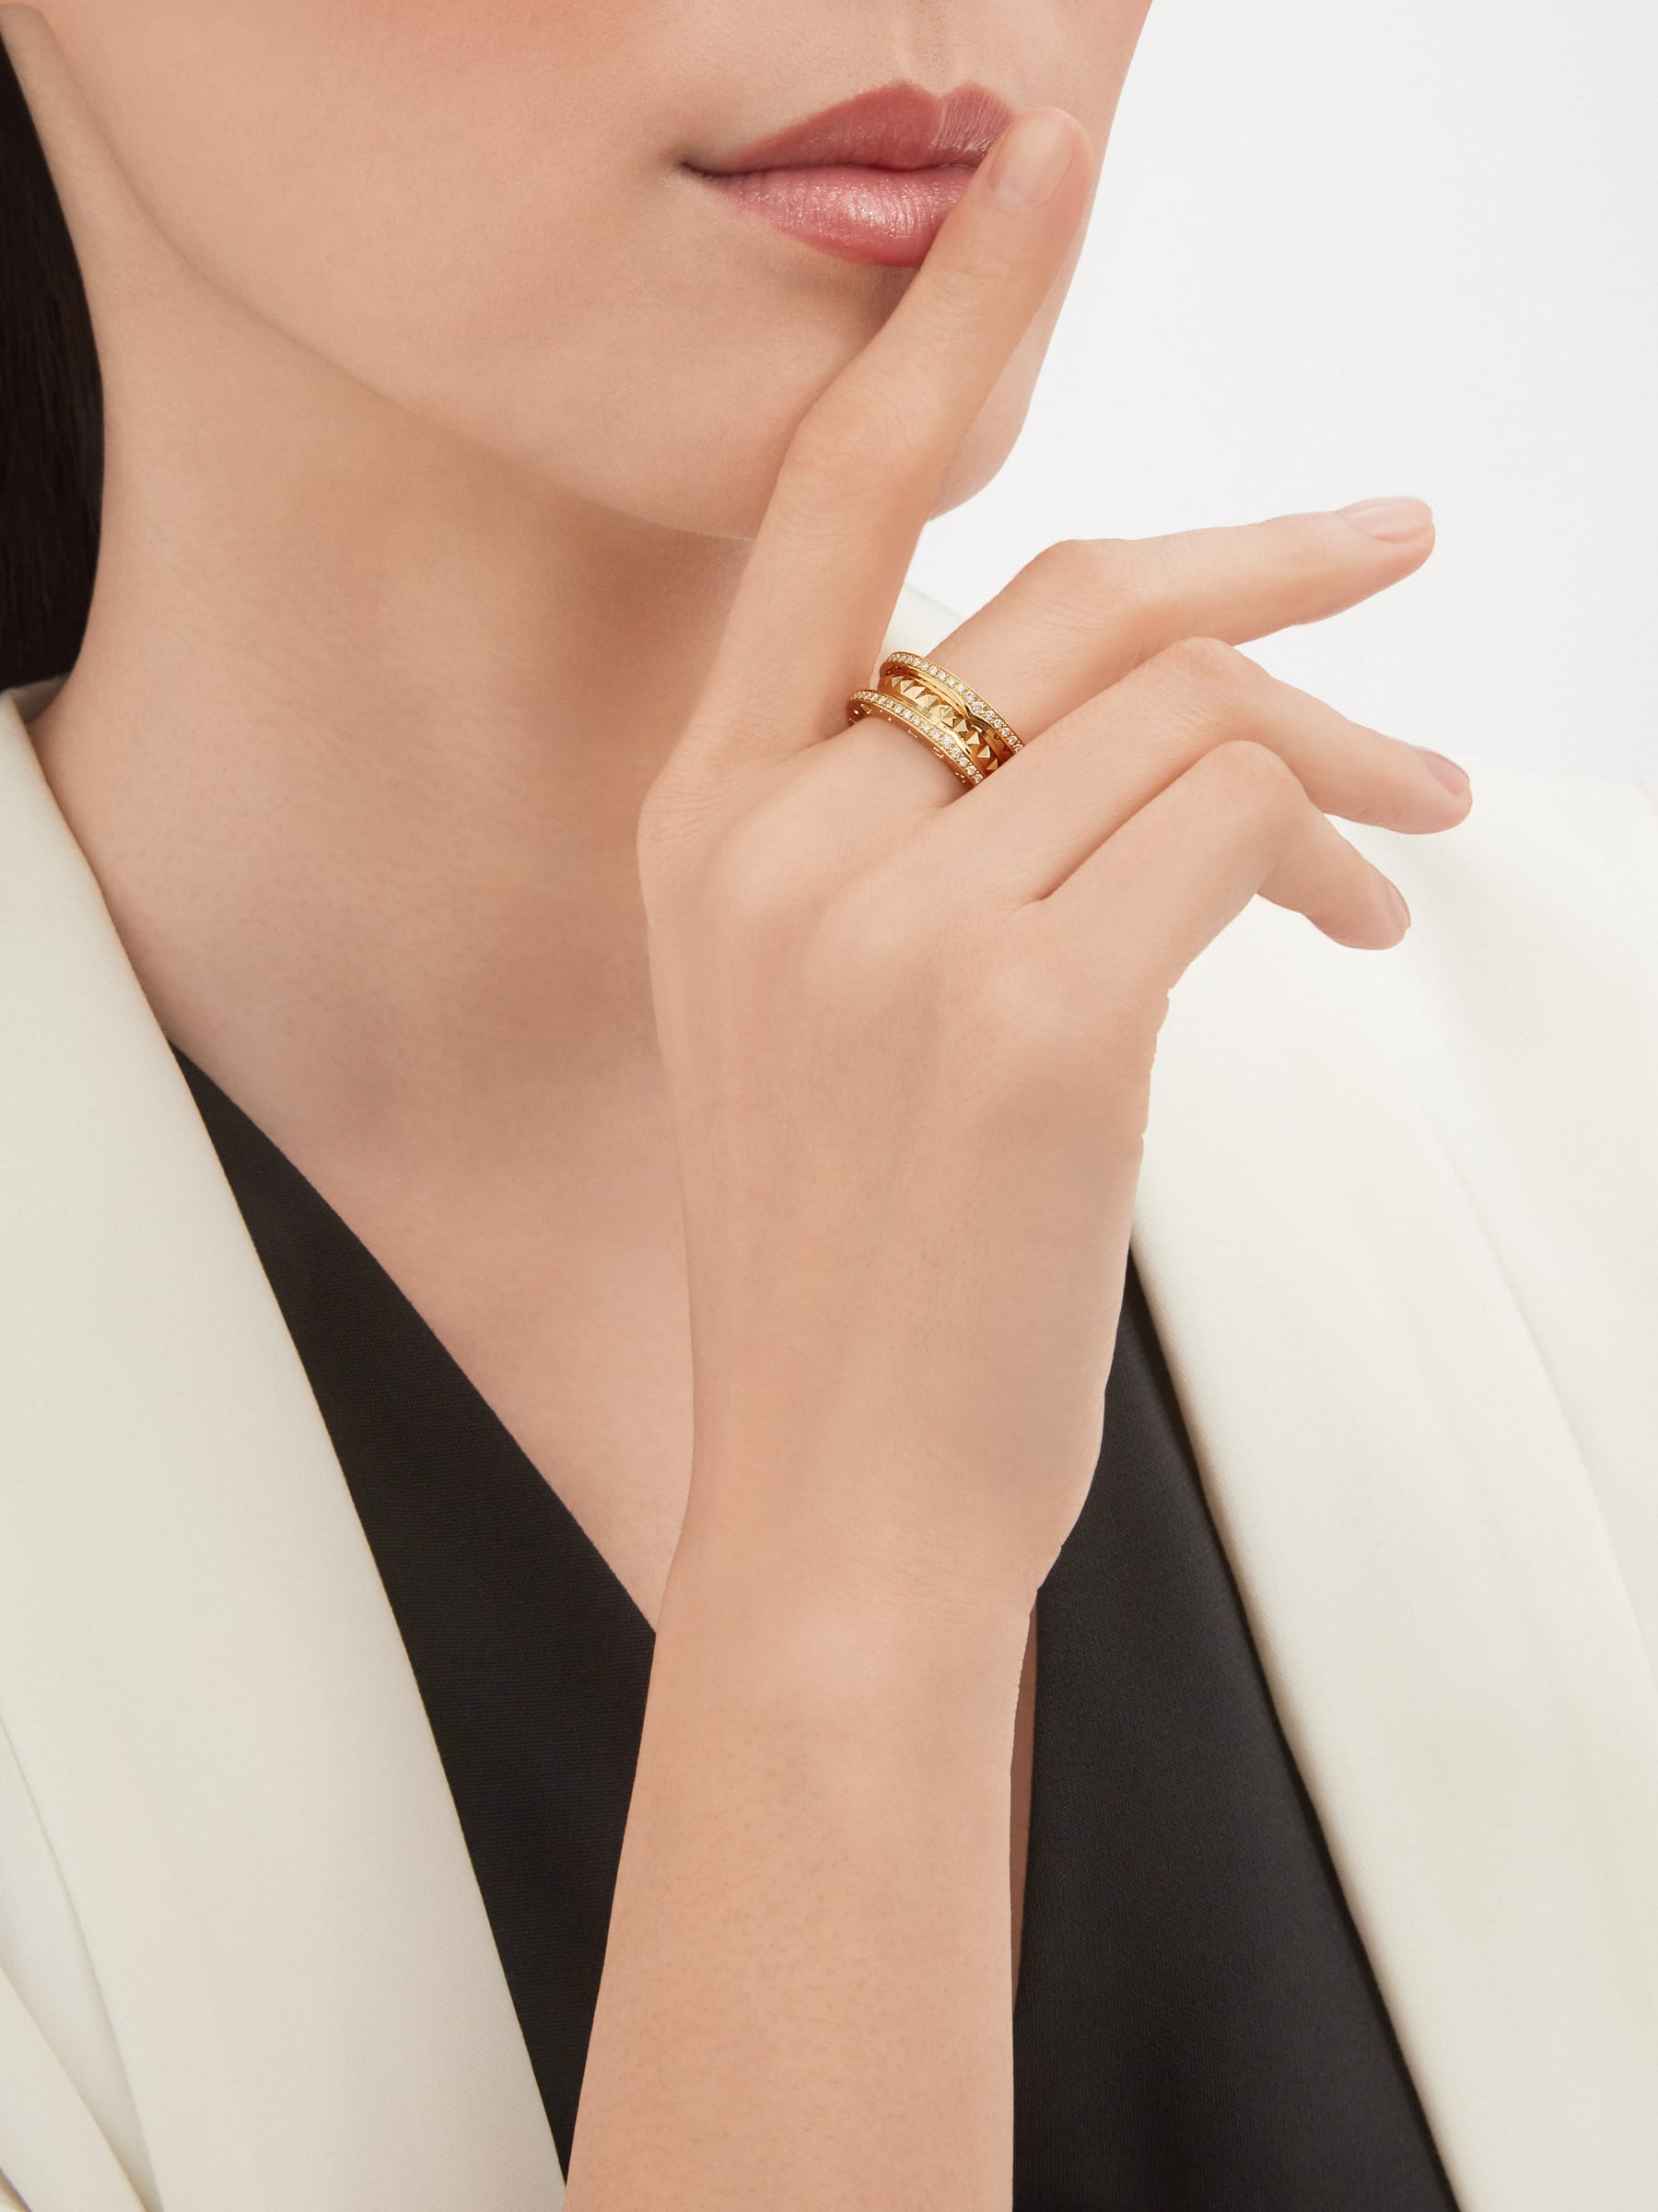 B.zero1 Rock two-band ring in 18 kt yellow gold with studded spiral and pavé diamonds on the edges AN859092 image 2